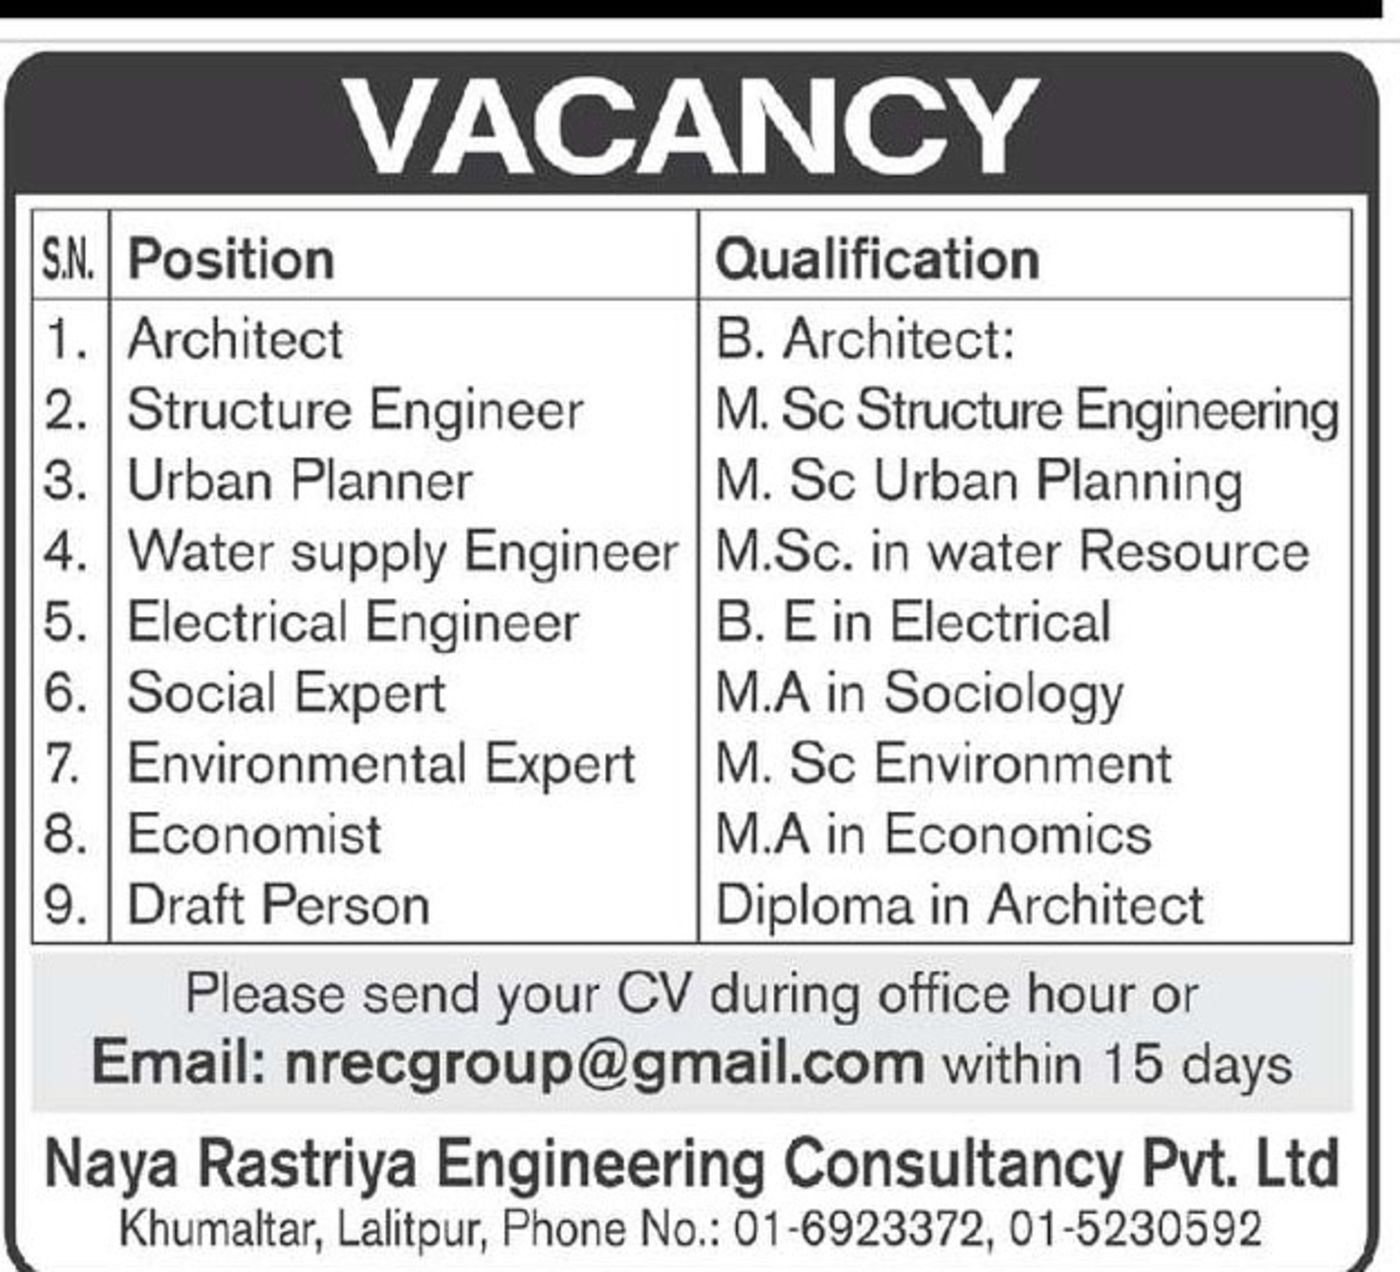 Vacancy - Architect, Structure Engineer, Urban Planner, Water Supply  Engineer, Electrical Engineer